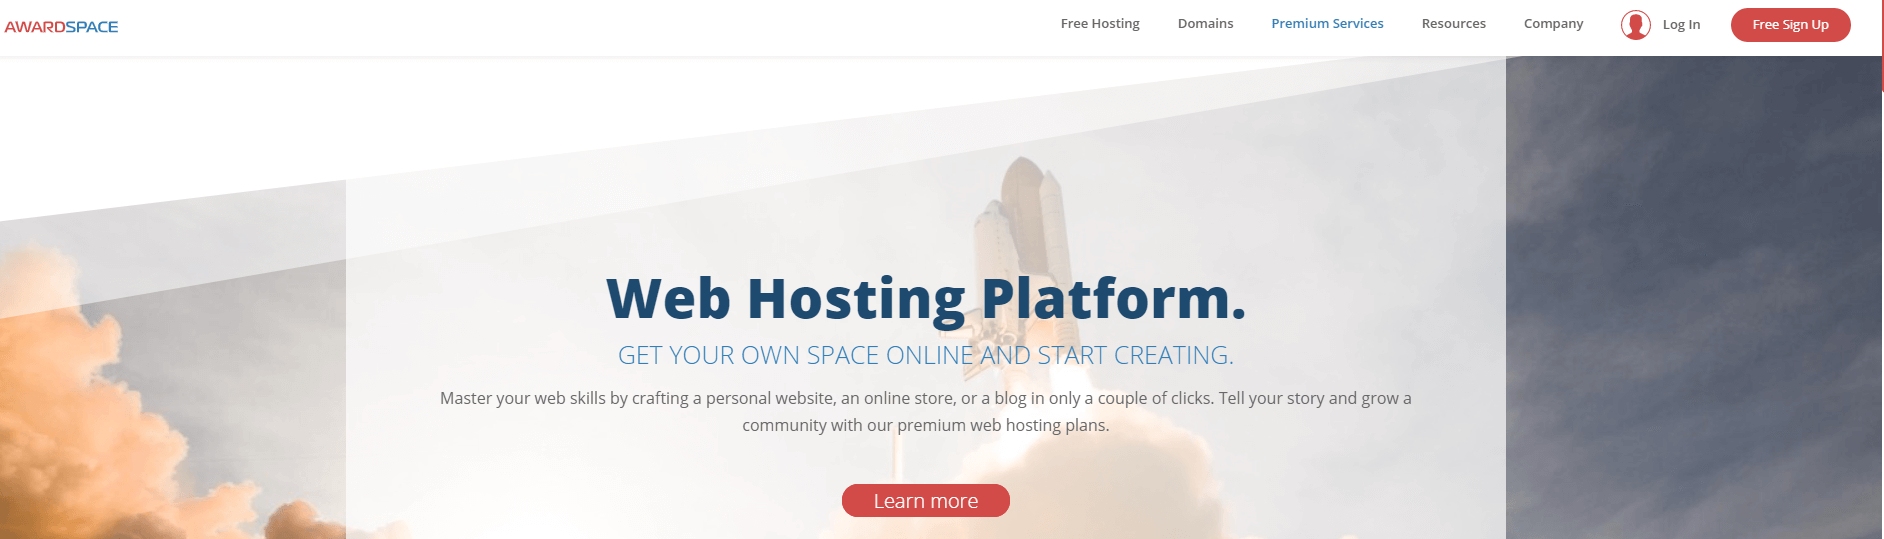 20 Best Free Website Hosting Services to Consider in 20